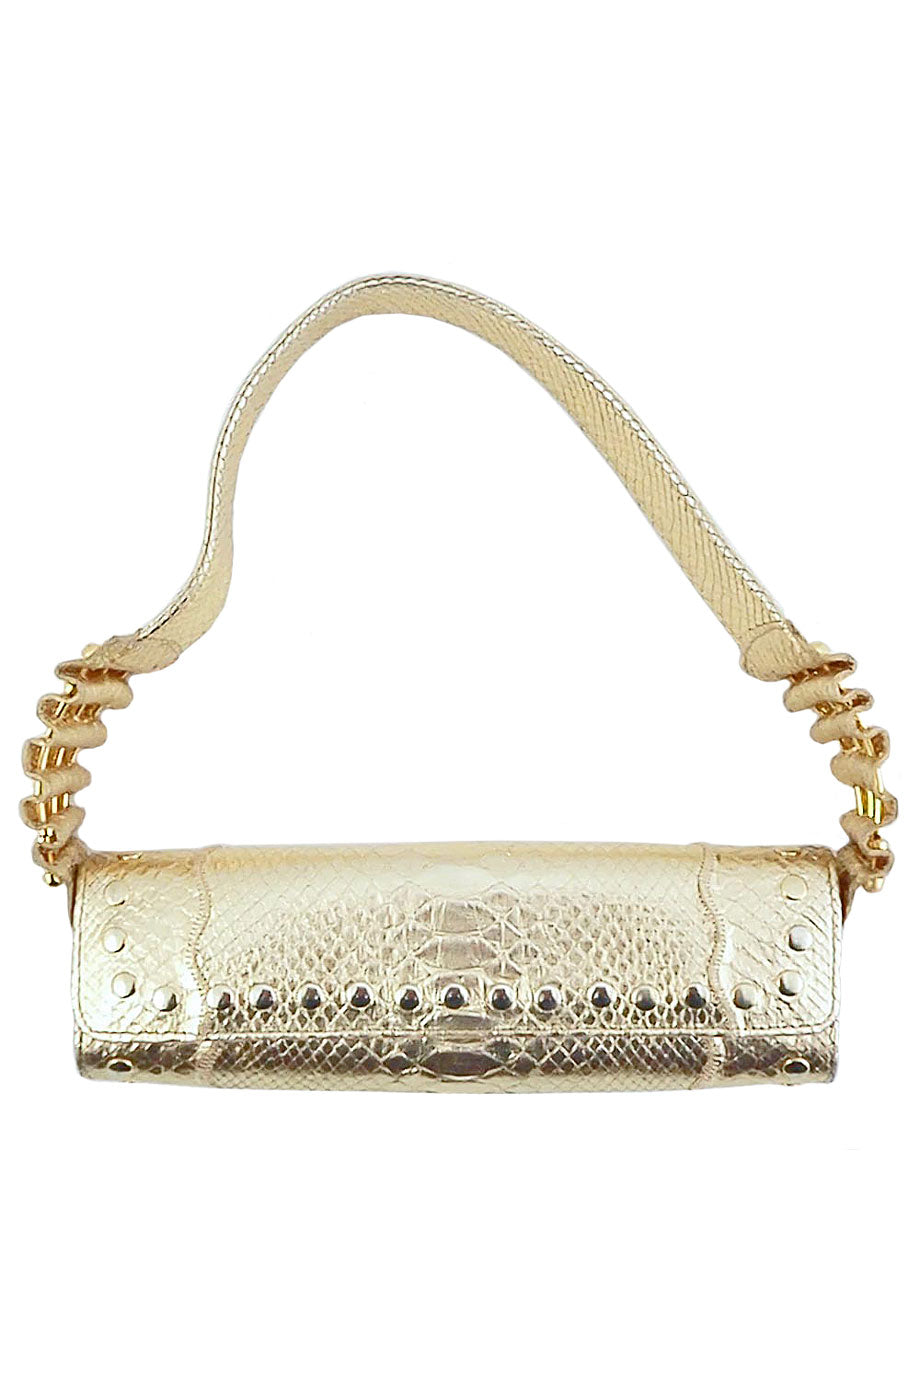 Carlos Falchi Studded Metallic Gold Python Shoulder Bag